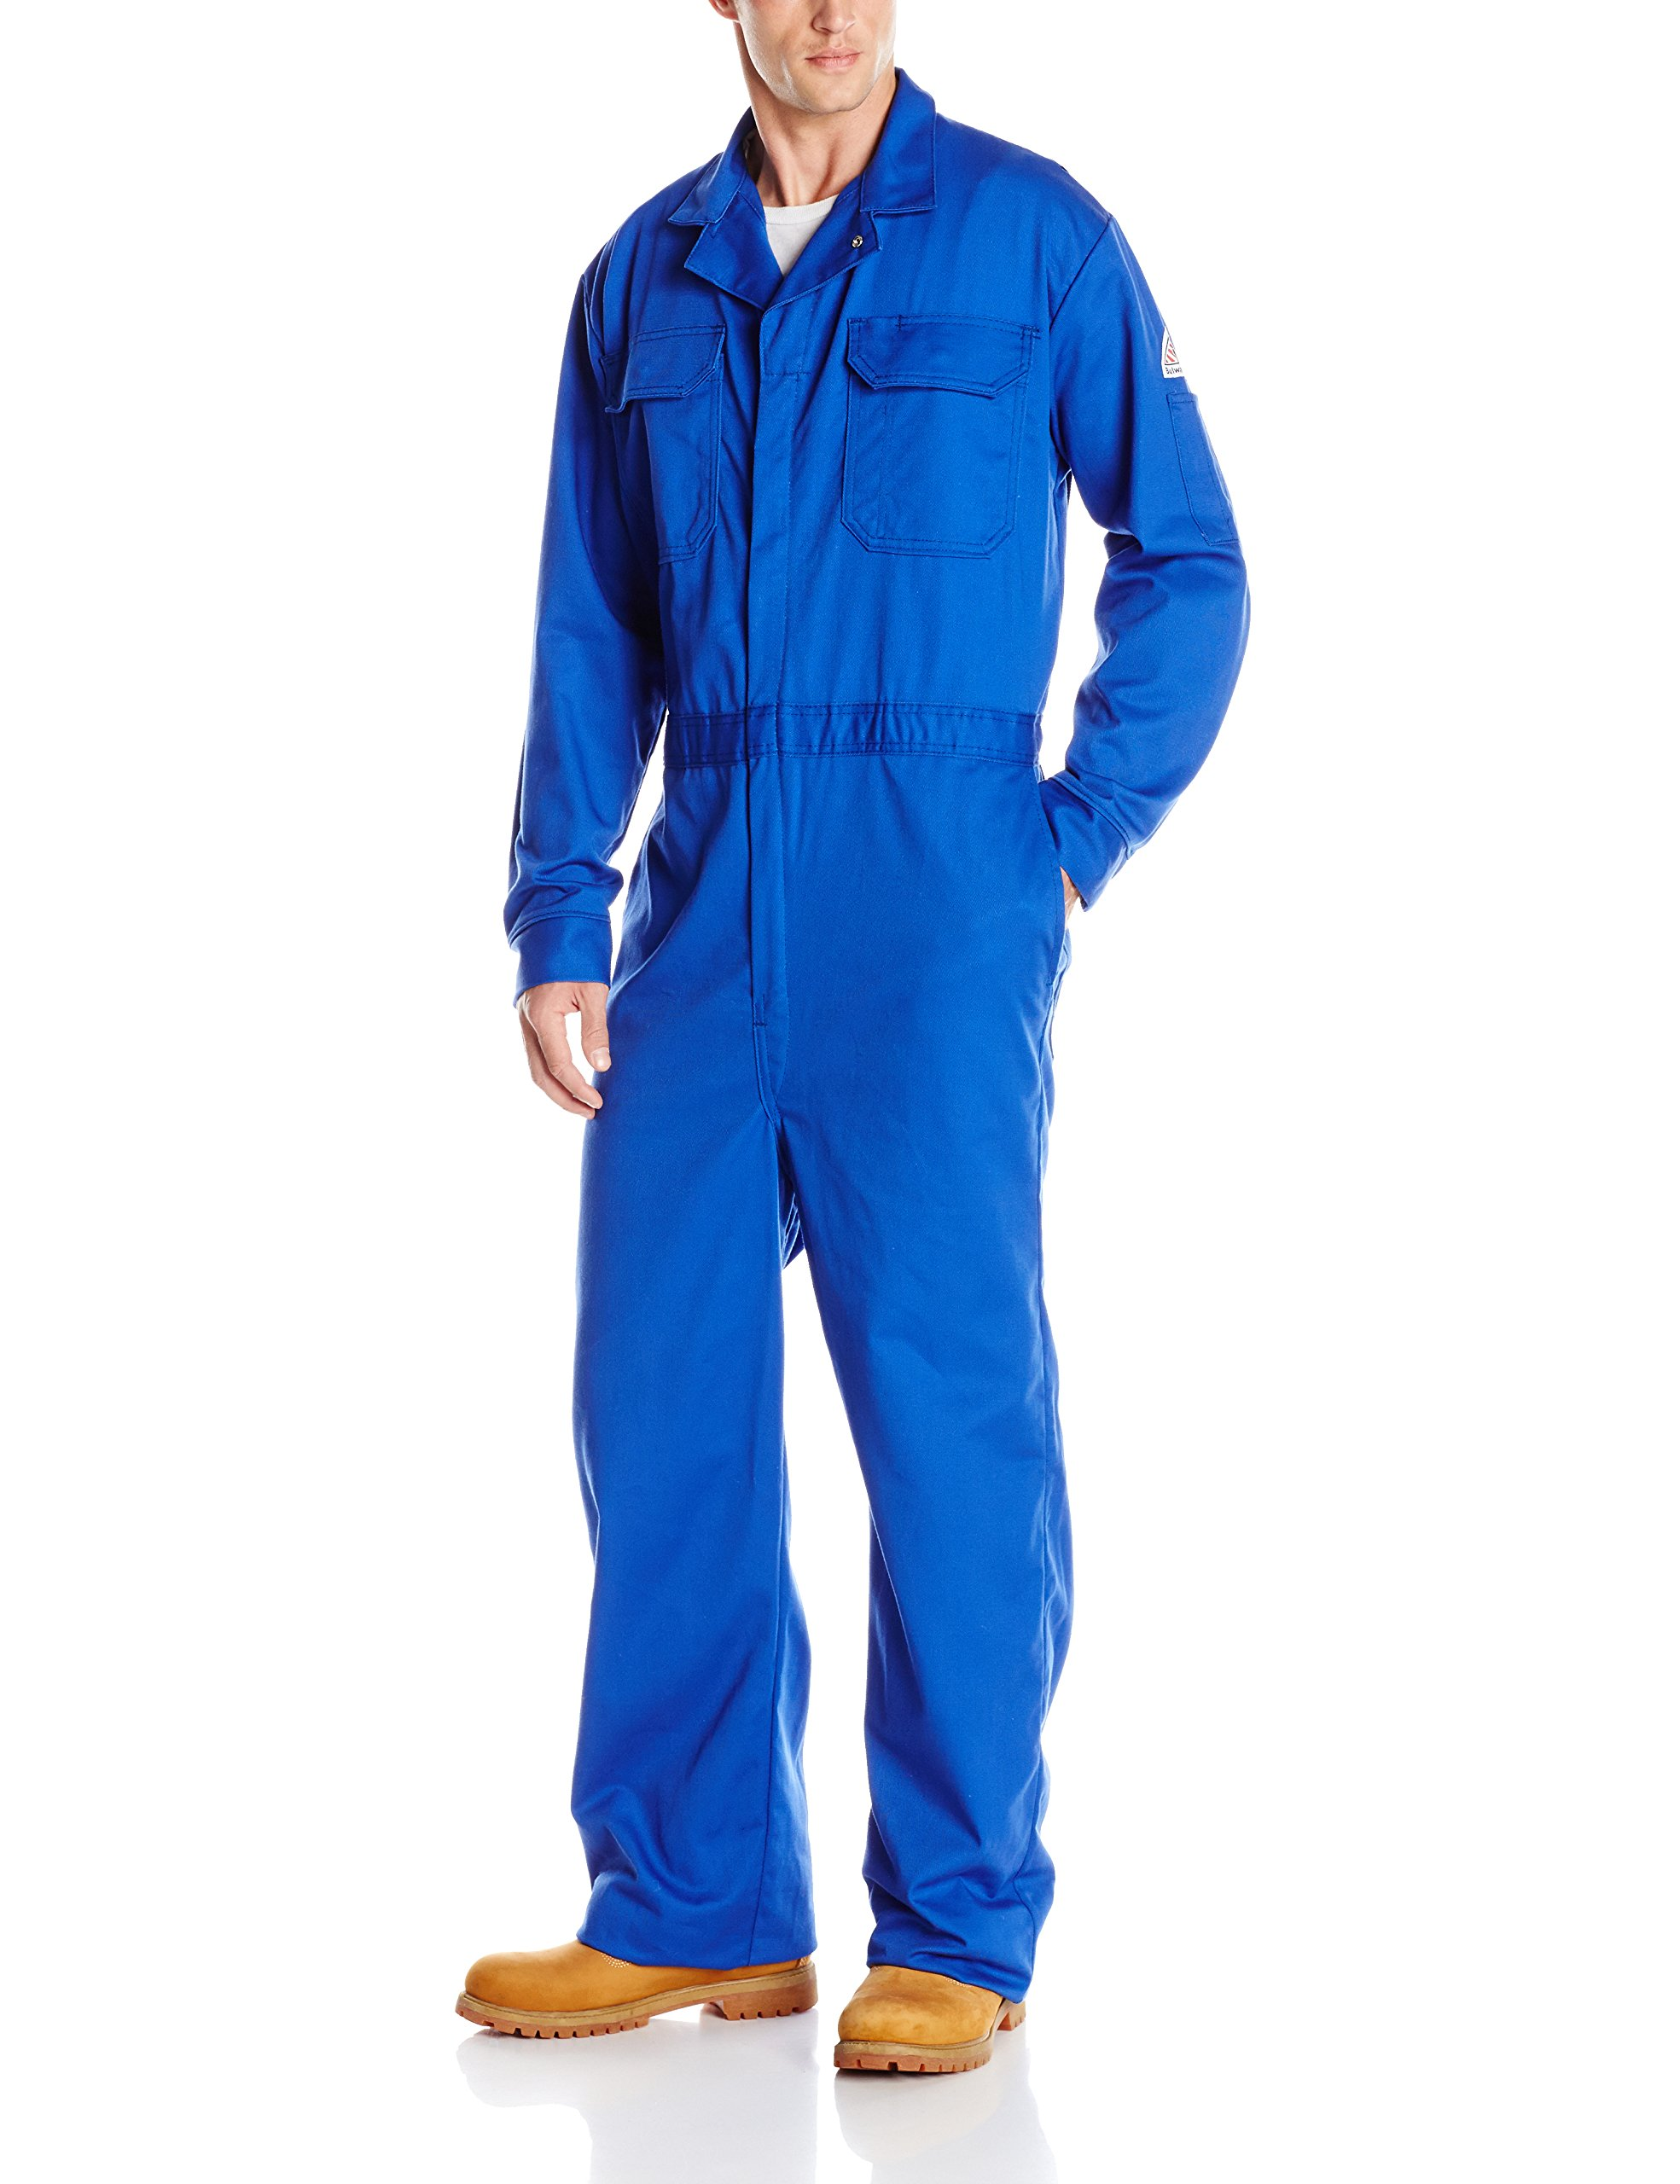 Bulwark Flame Resistant 9 oz Twill Cotton Long Deluxe Coverall with Concealed Snap Cuff, Royal Blue, 44 Long